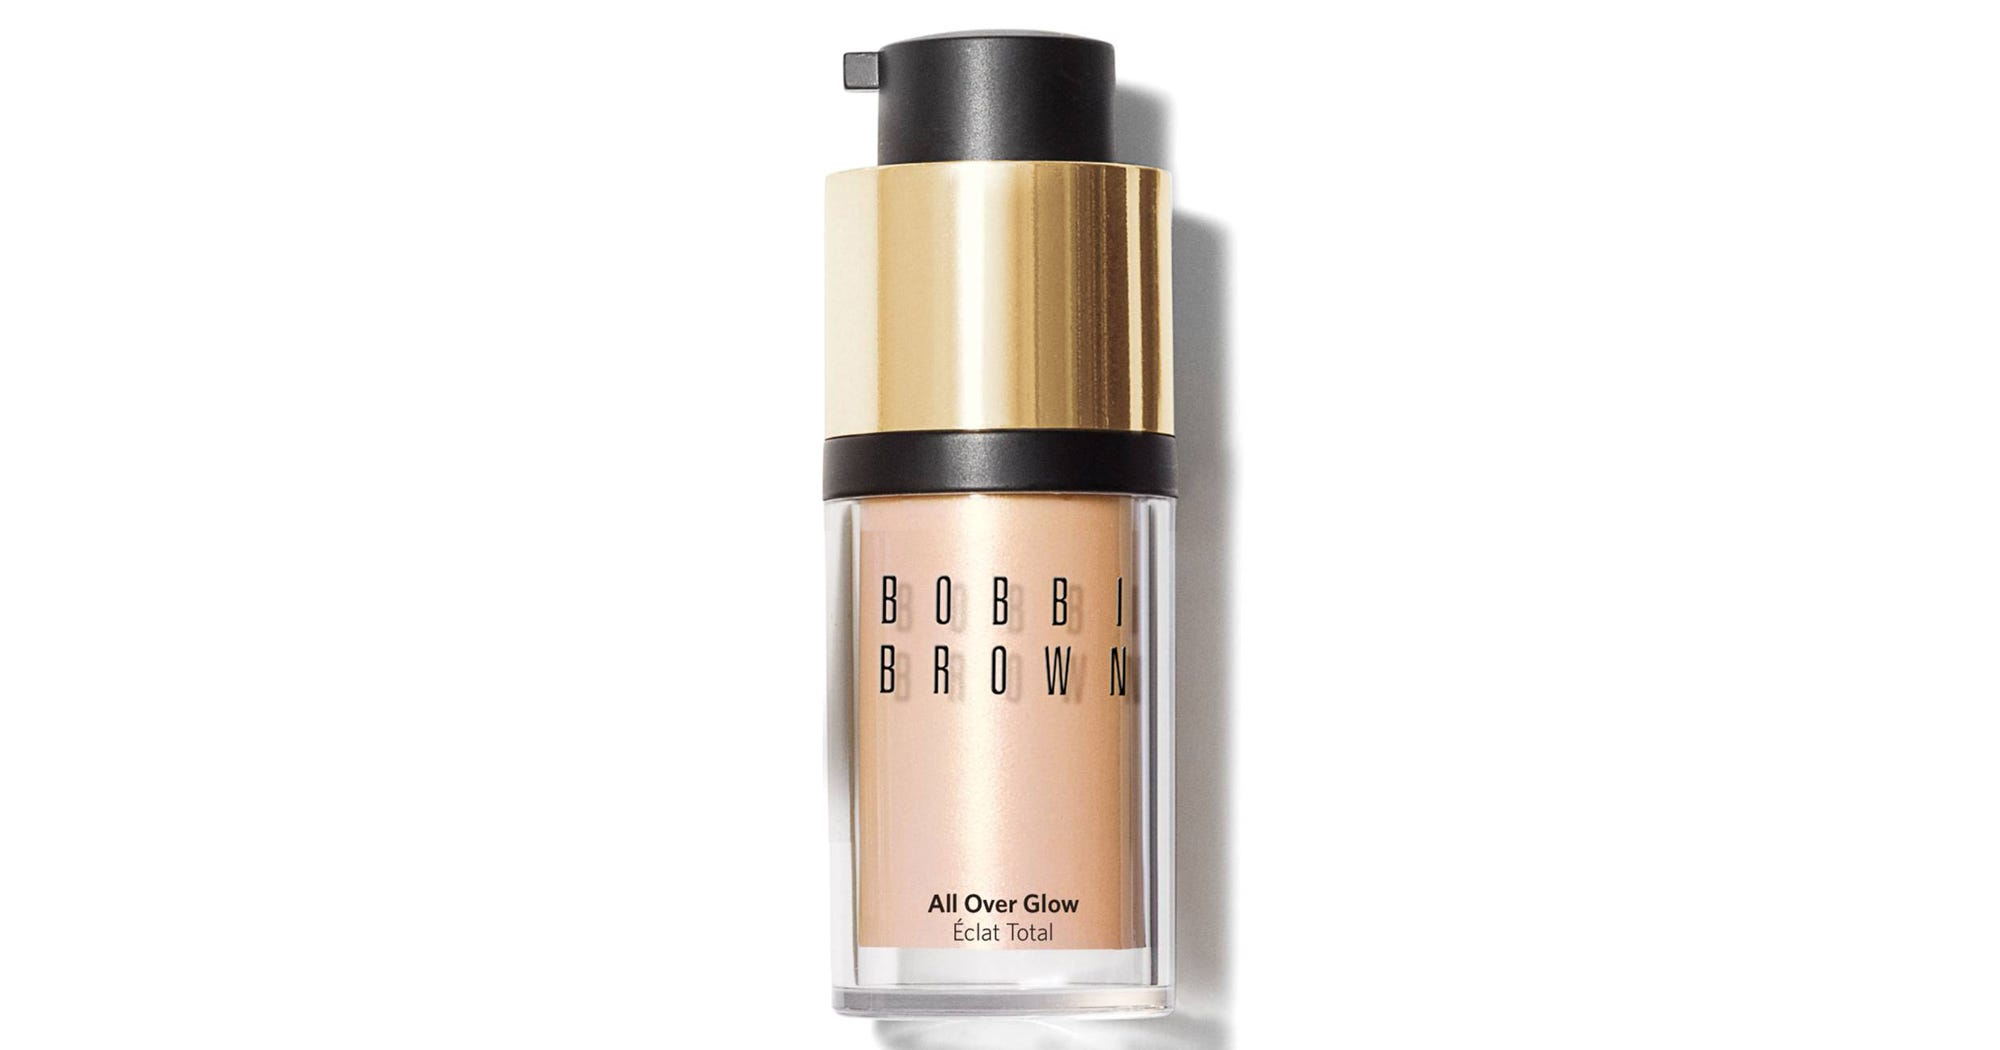 The Perfect Highlighter For When You Just Want To Look Really Dewy